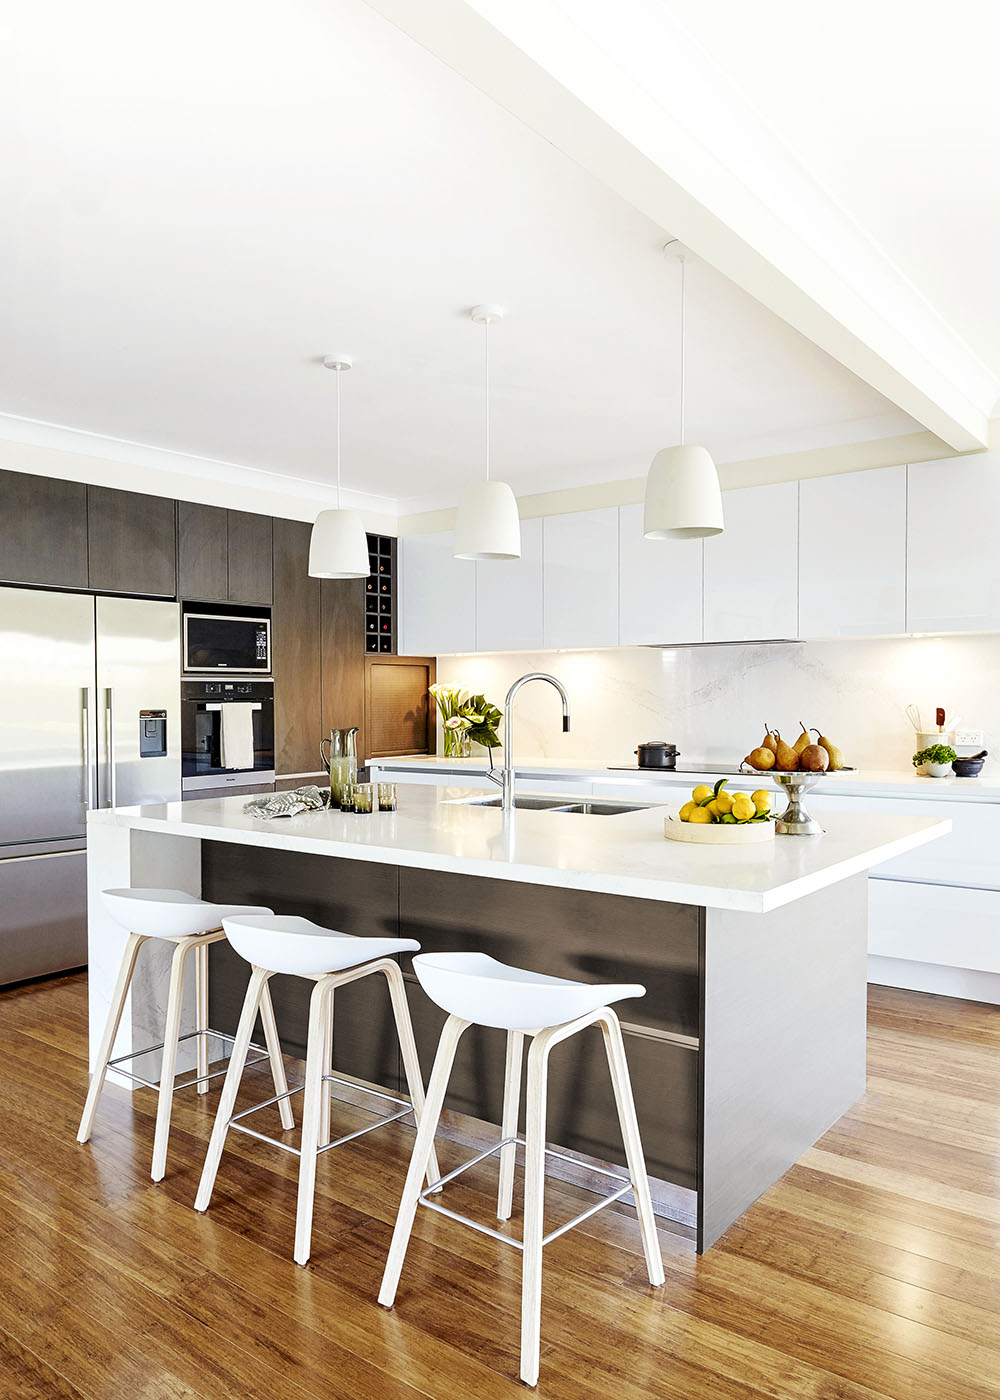 Sydney's Beautiful Bathrooms & Kitchens let this timeless modern kitchen inspire you | home beautiful